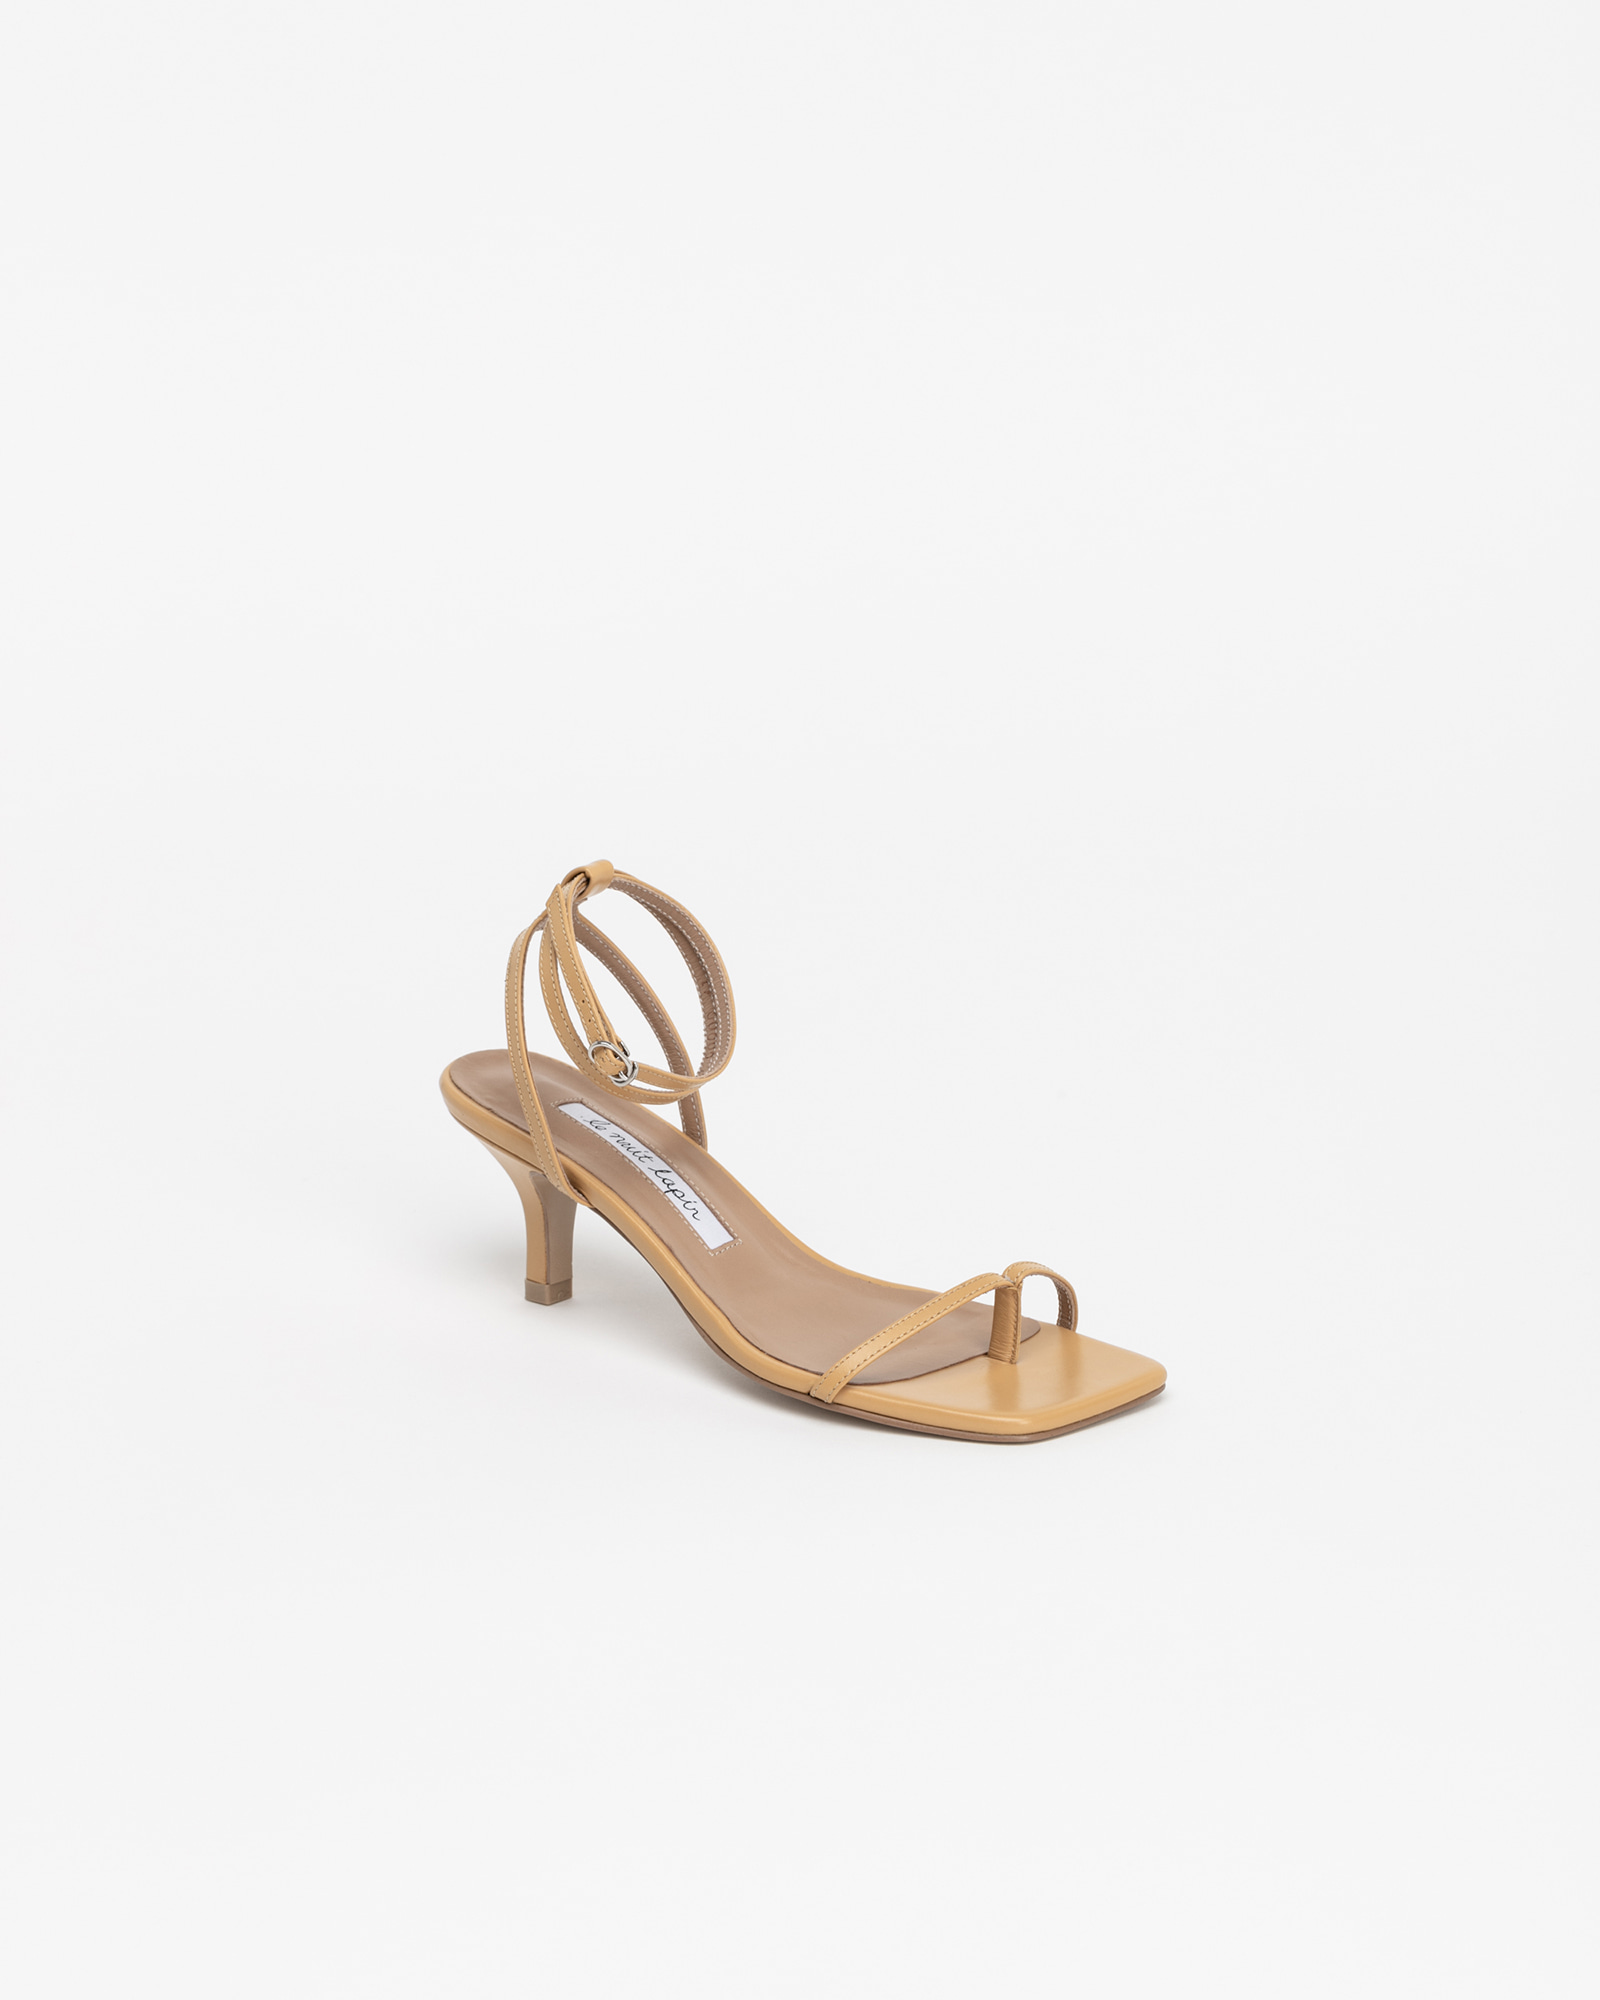 Evelaine Thong Strap Sandals in Fever Yellow